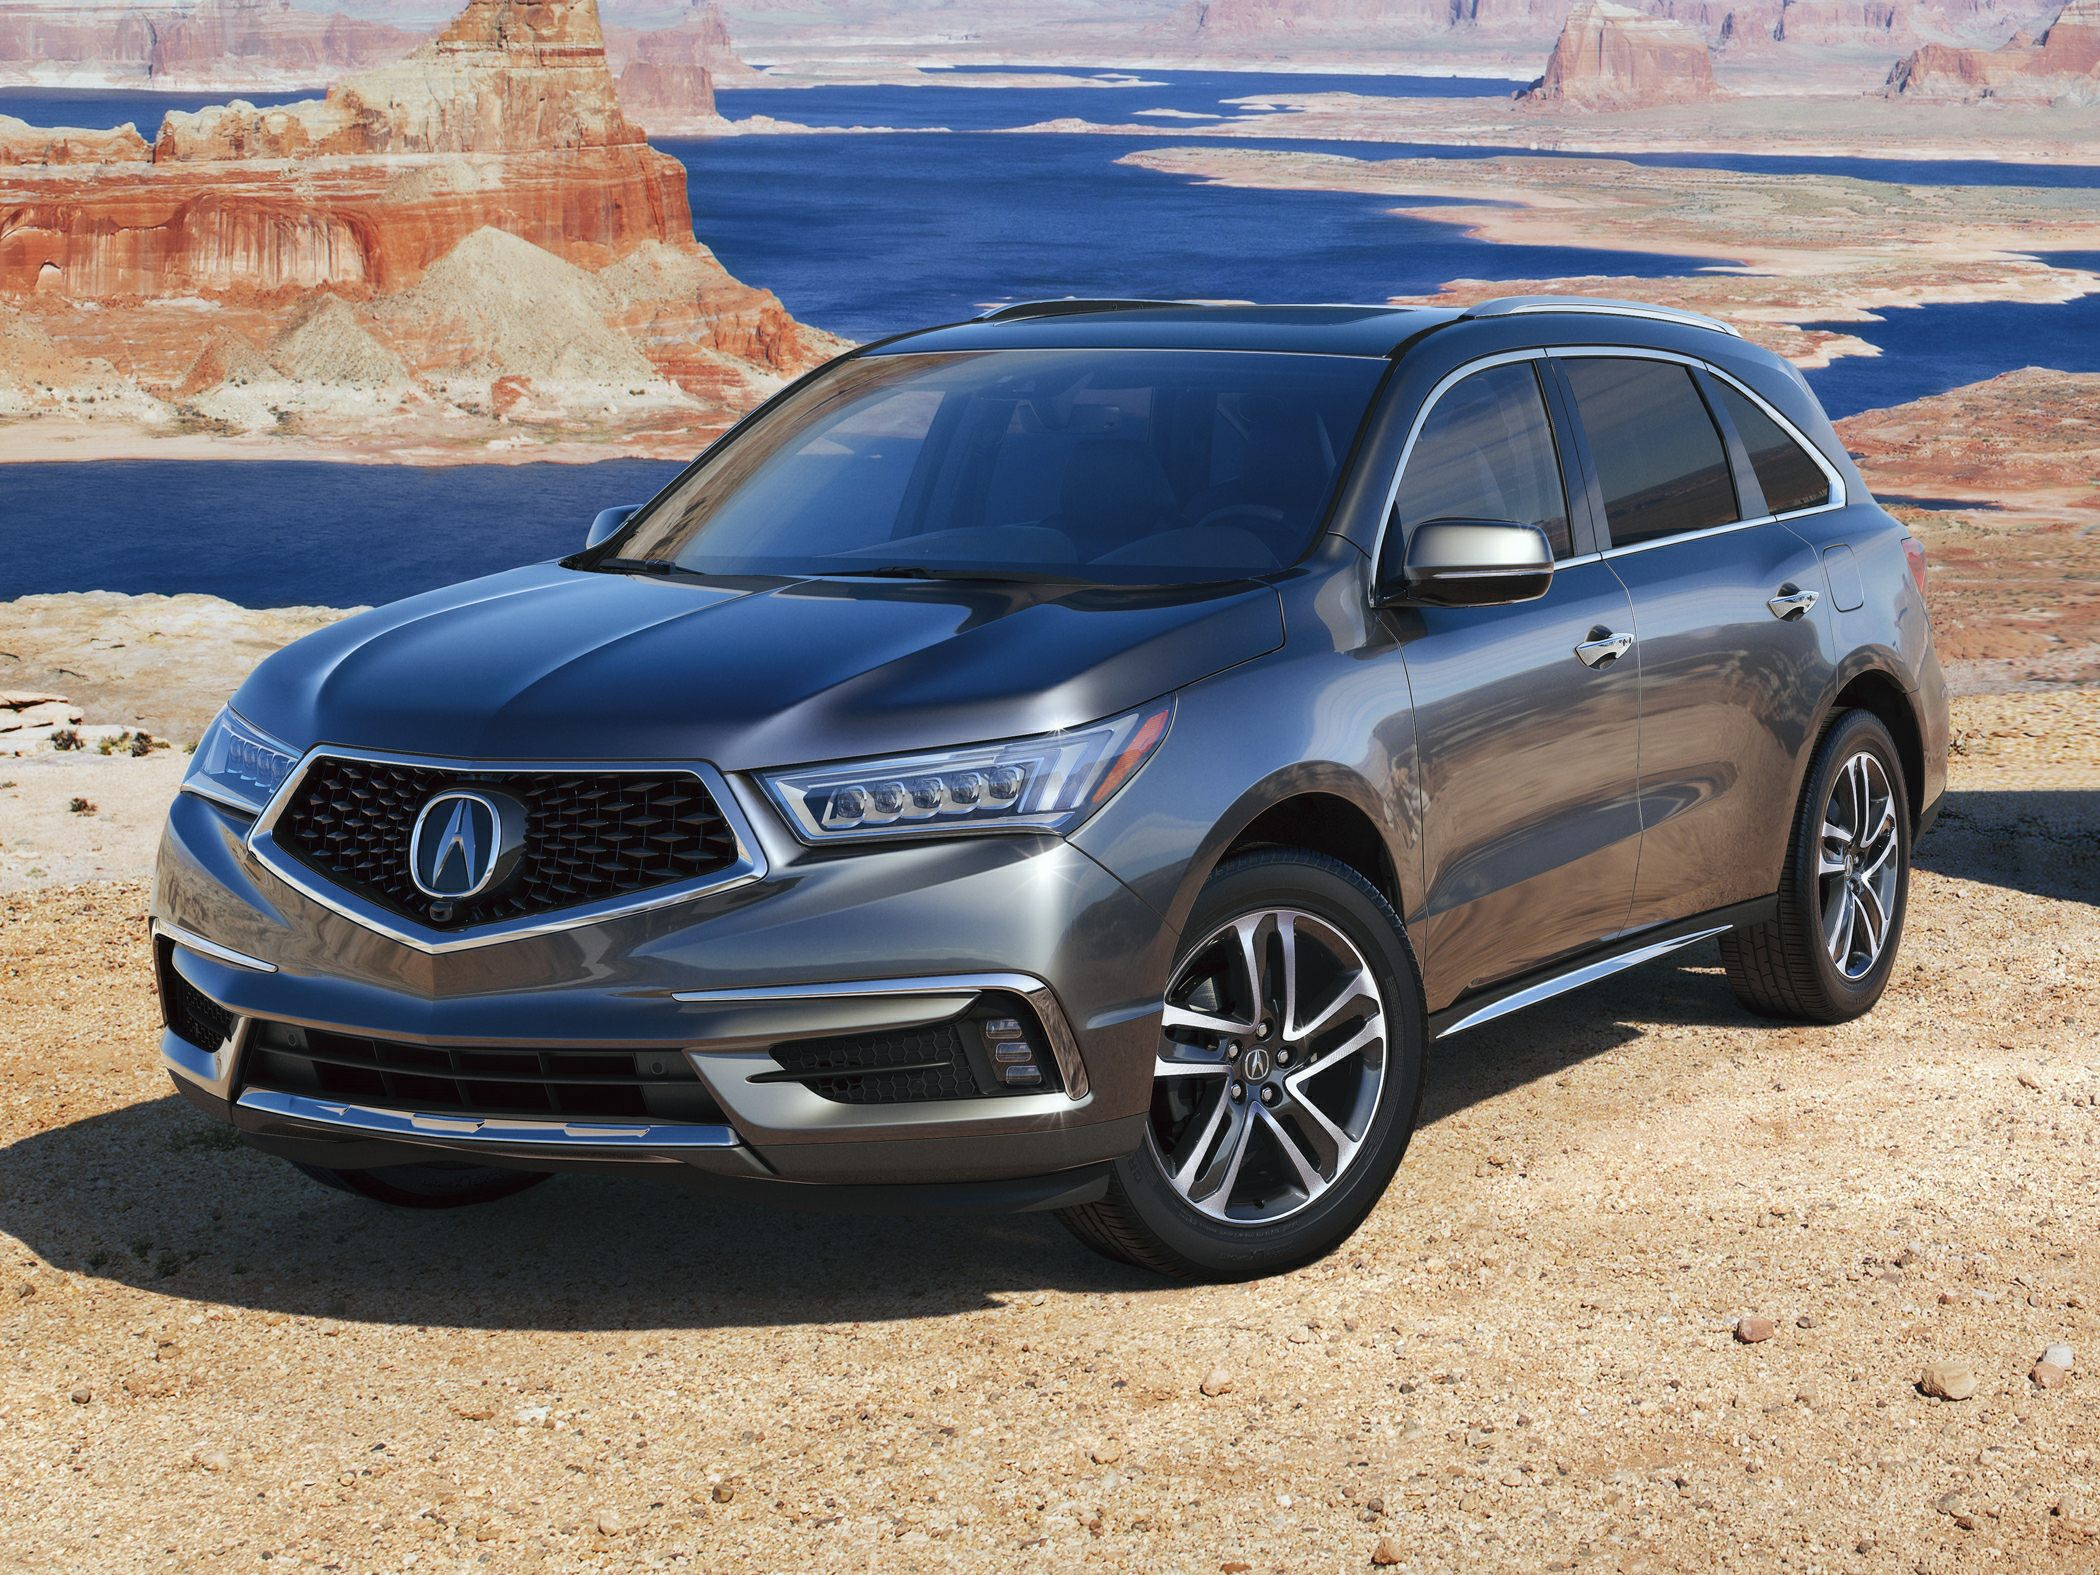 Acura MDX Prices Reviews And New Model Information Autoblog - Acura suv 2014 price